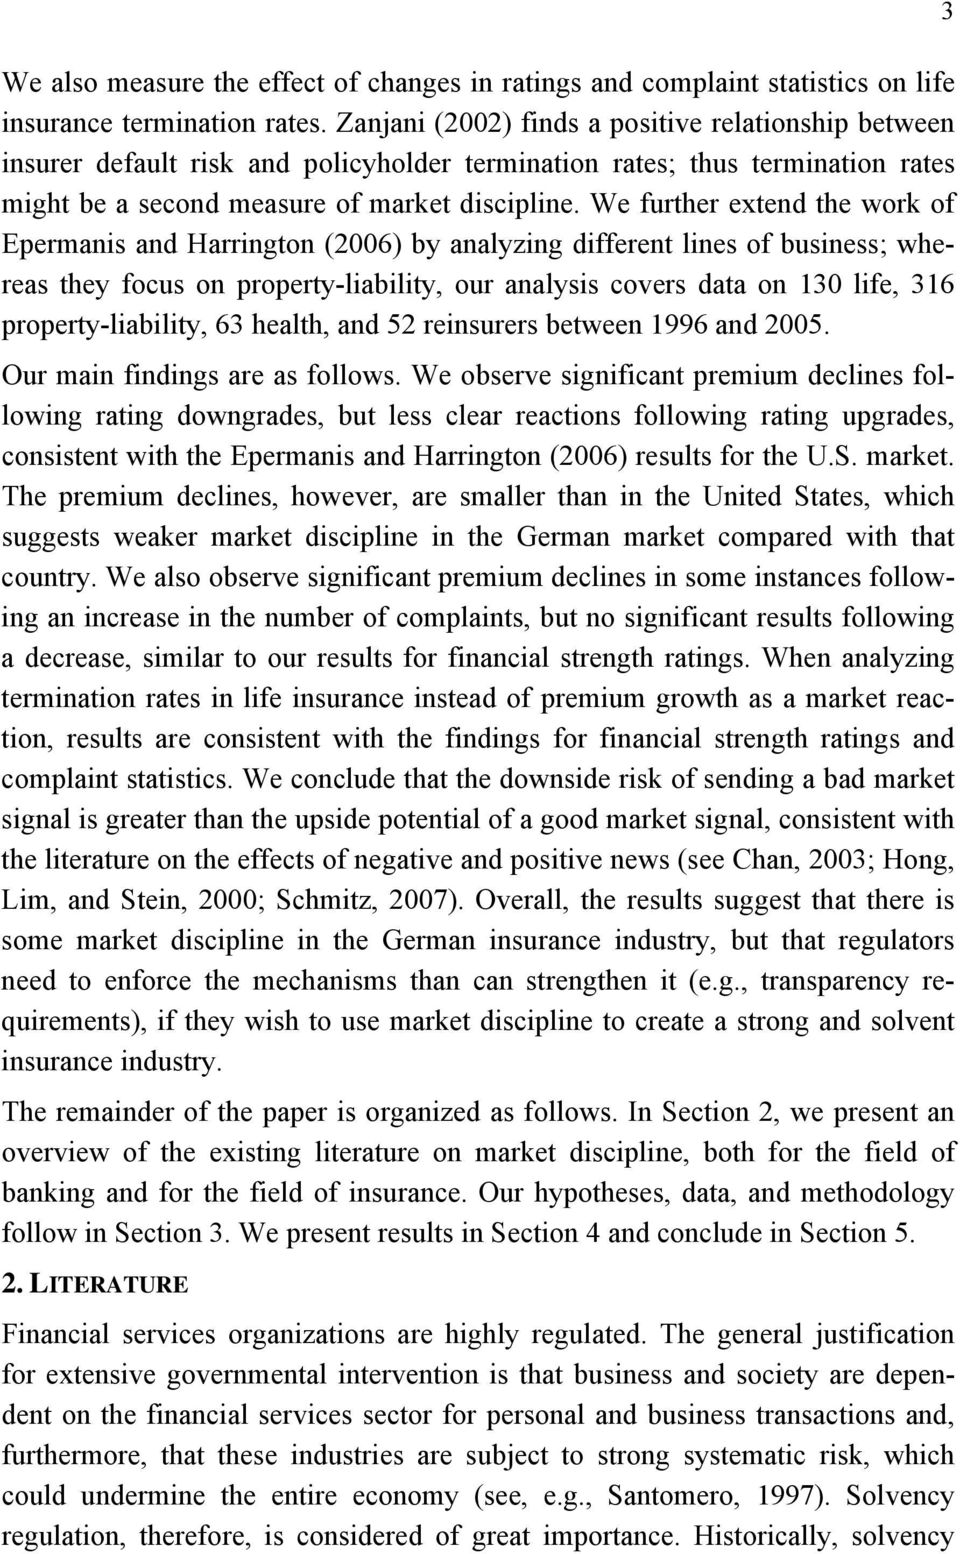 We further extend the work of Epermanis and Harrington (2006) by analyzing different lines of business; whereas they focus on property-liability, our analysis covers data on 130 life, 316